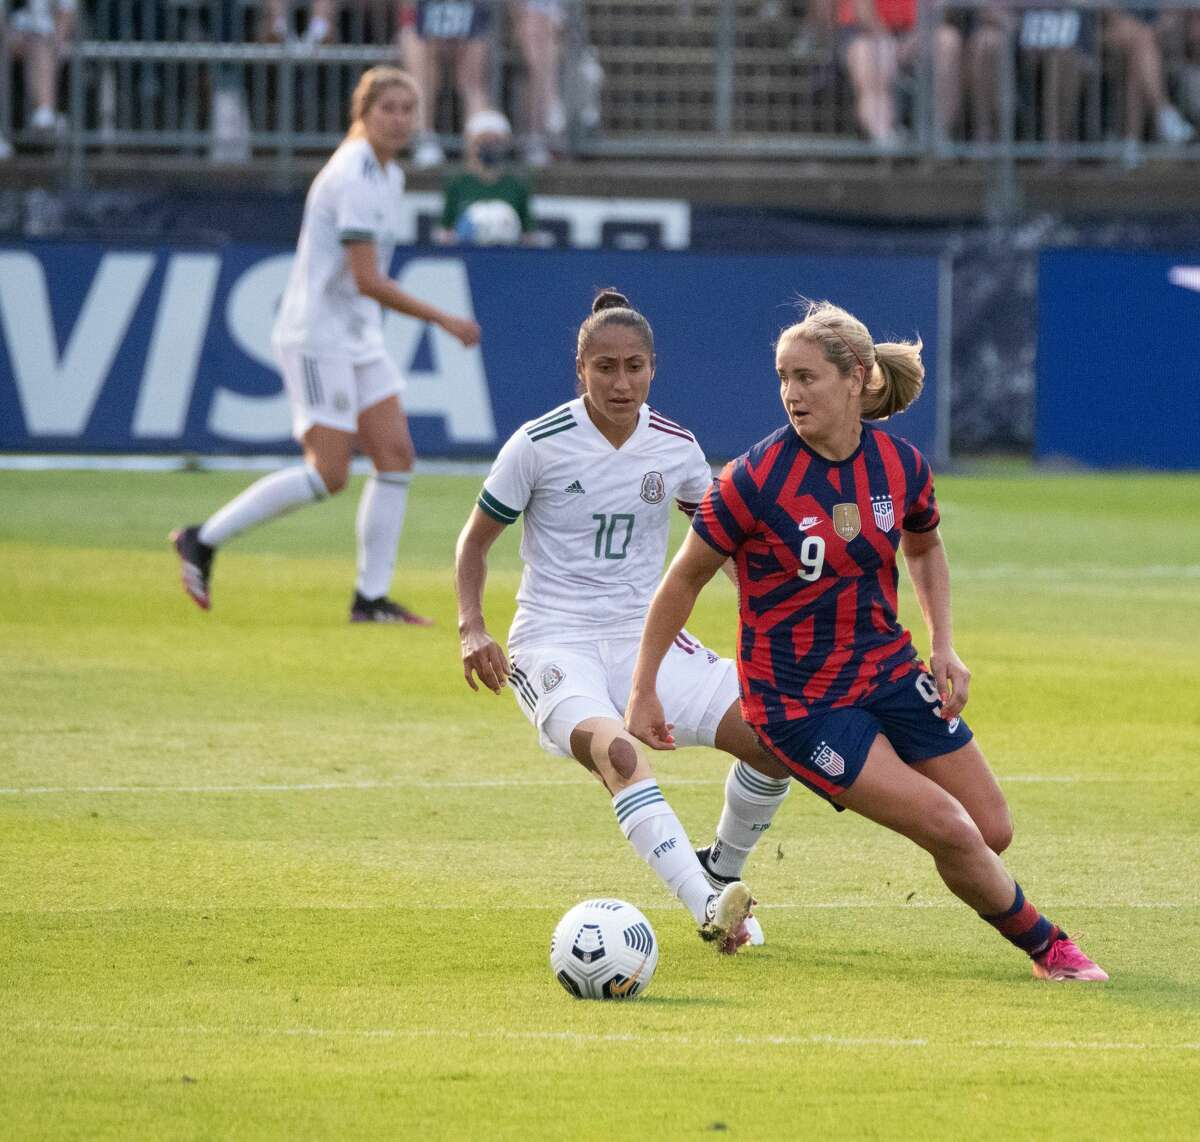 Lindsey Horan of the US Women's Soccer National Team during a Sendoff-Series match against Mexico at Pratt & Whitney Stadium in East Hartford, Conn. on Monday, July 5, 2021. The U.S. won 4-0 over Mexico. (Joyce Bassett / Special to the Times Union)